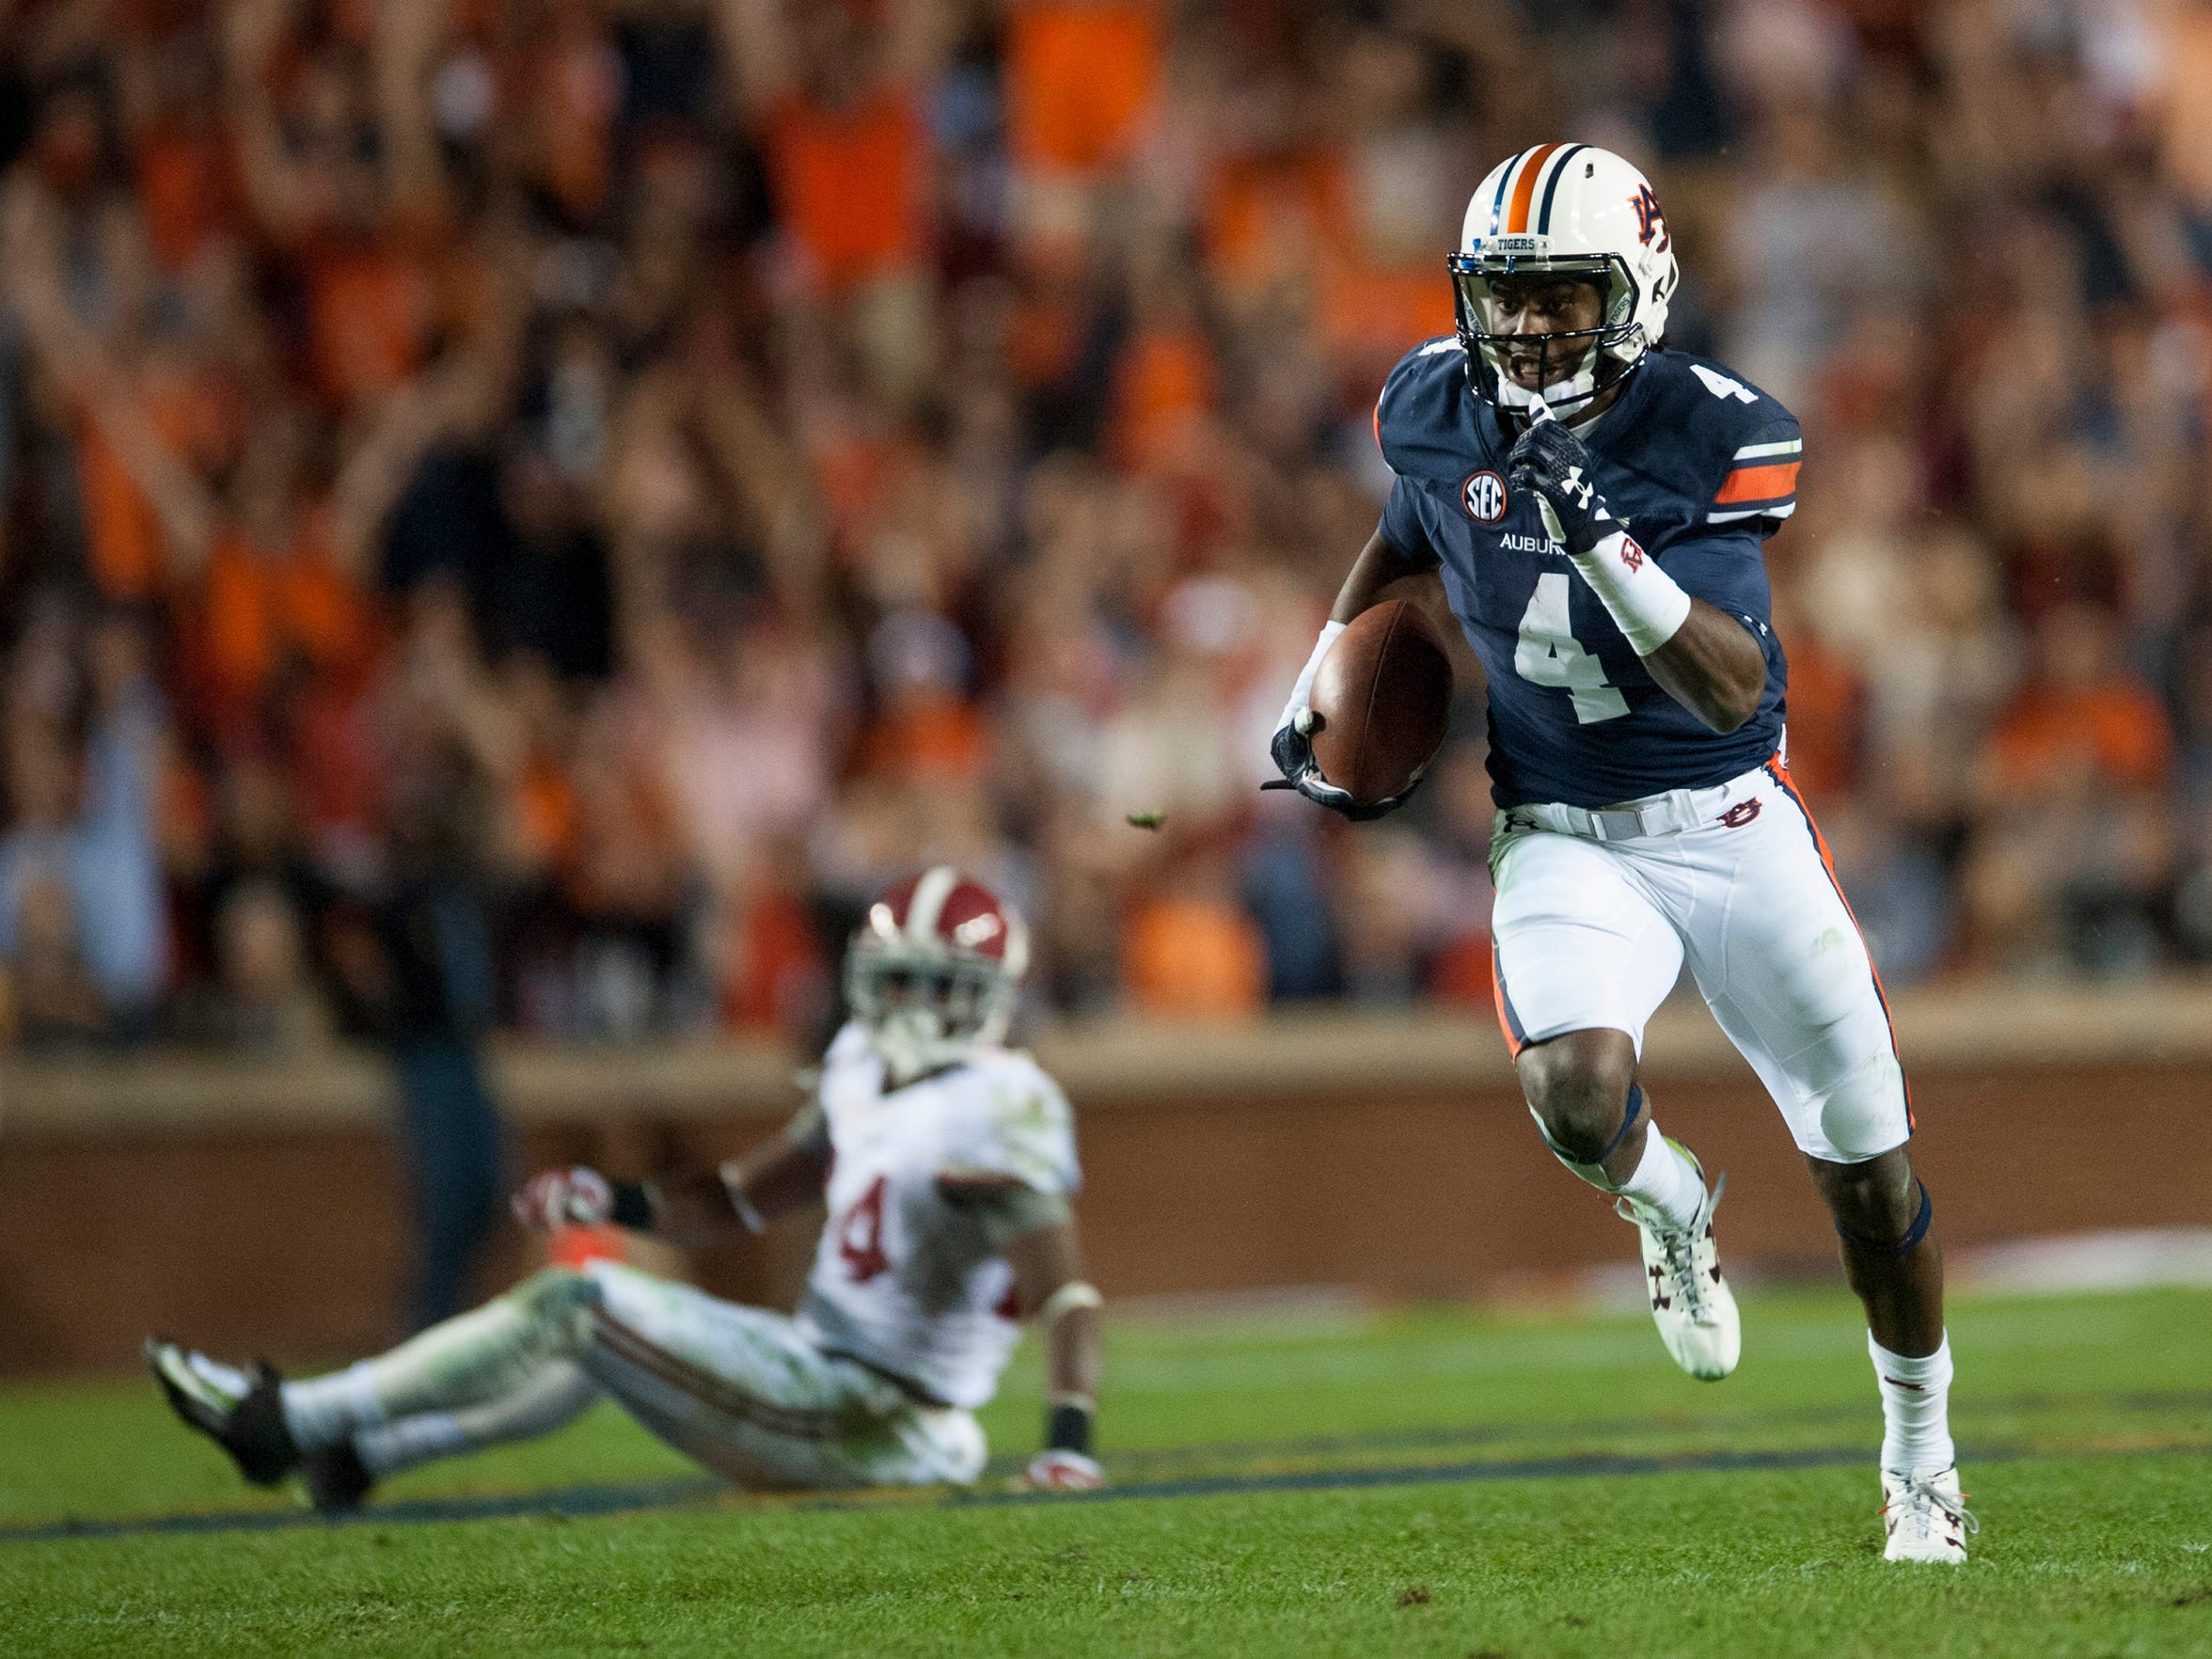 Auburn wide receiver Jason Smith (4) carries in a reception for a touchdown against Alabama during the Iron Bowl at Jordan-Hare Stadium in Auburn, Ala. on Saturday November 28, 2015. (Mickey Welsh / Montgomery Advertiser)